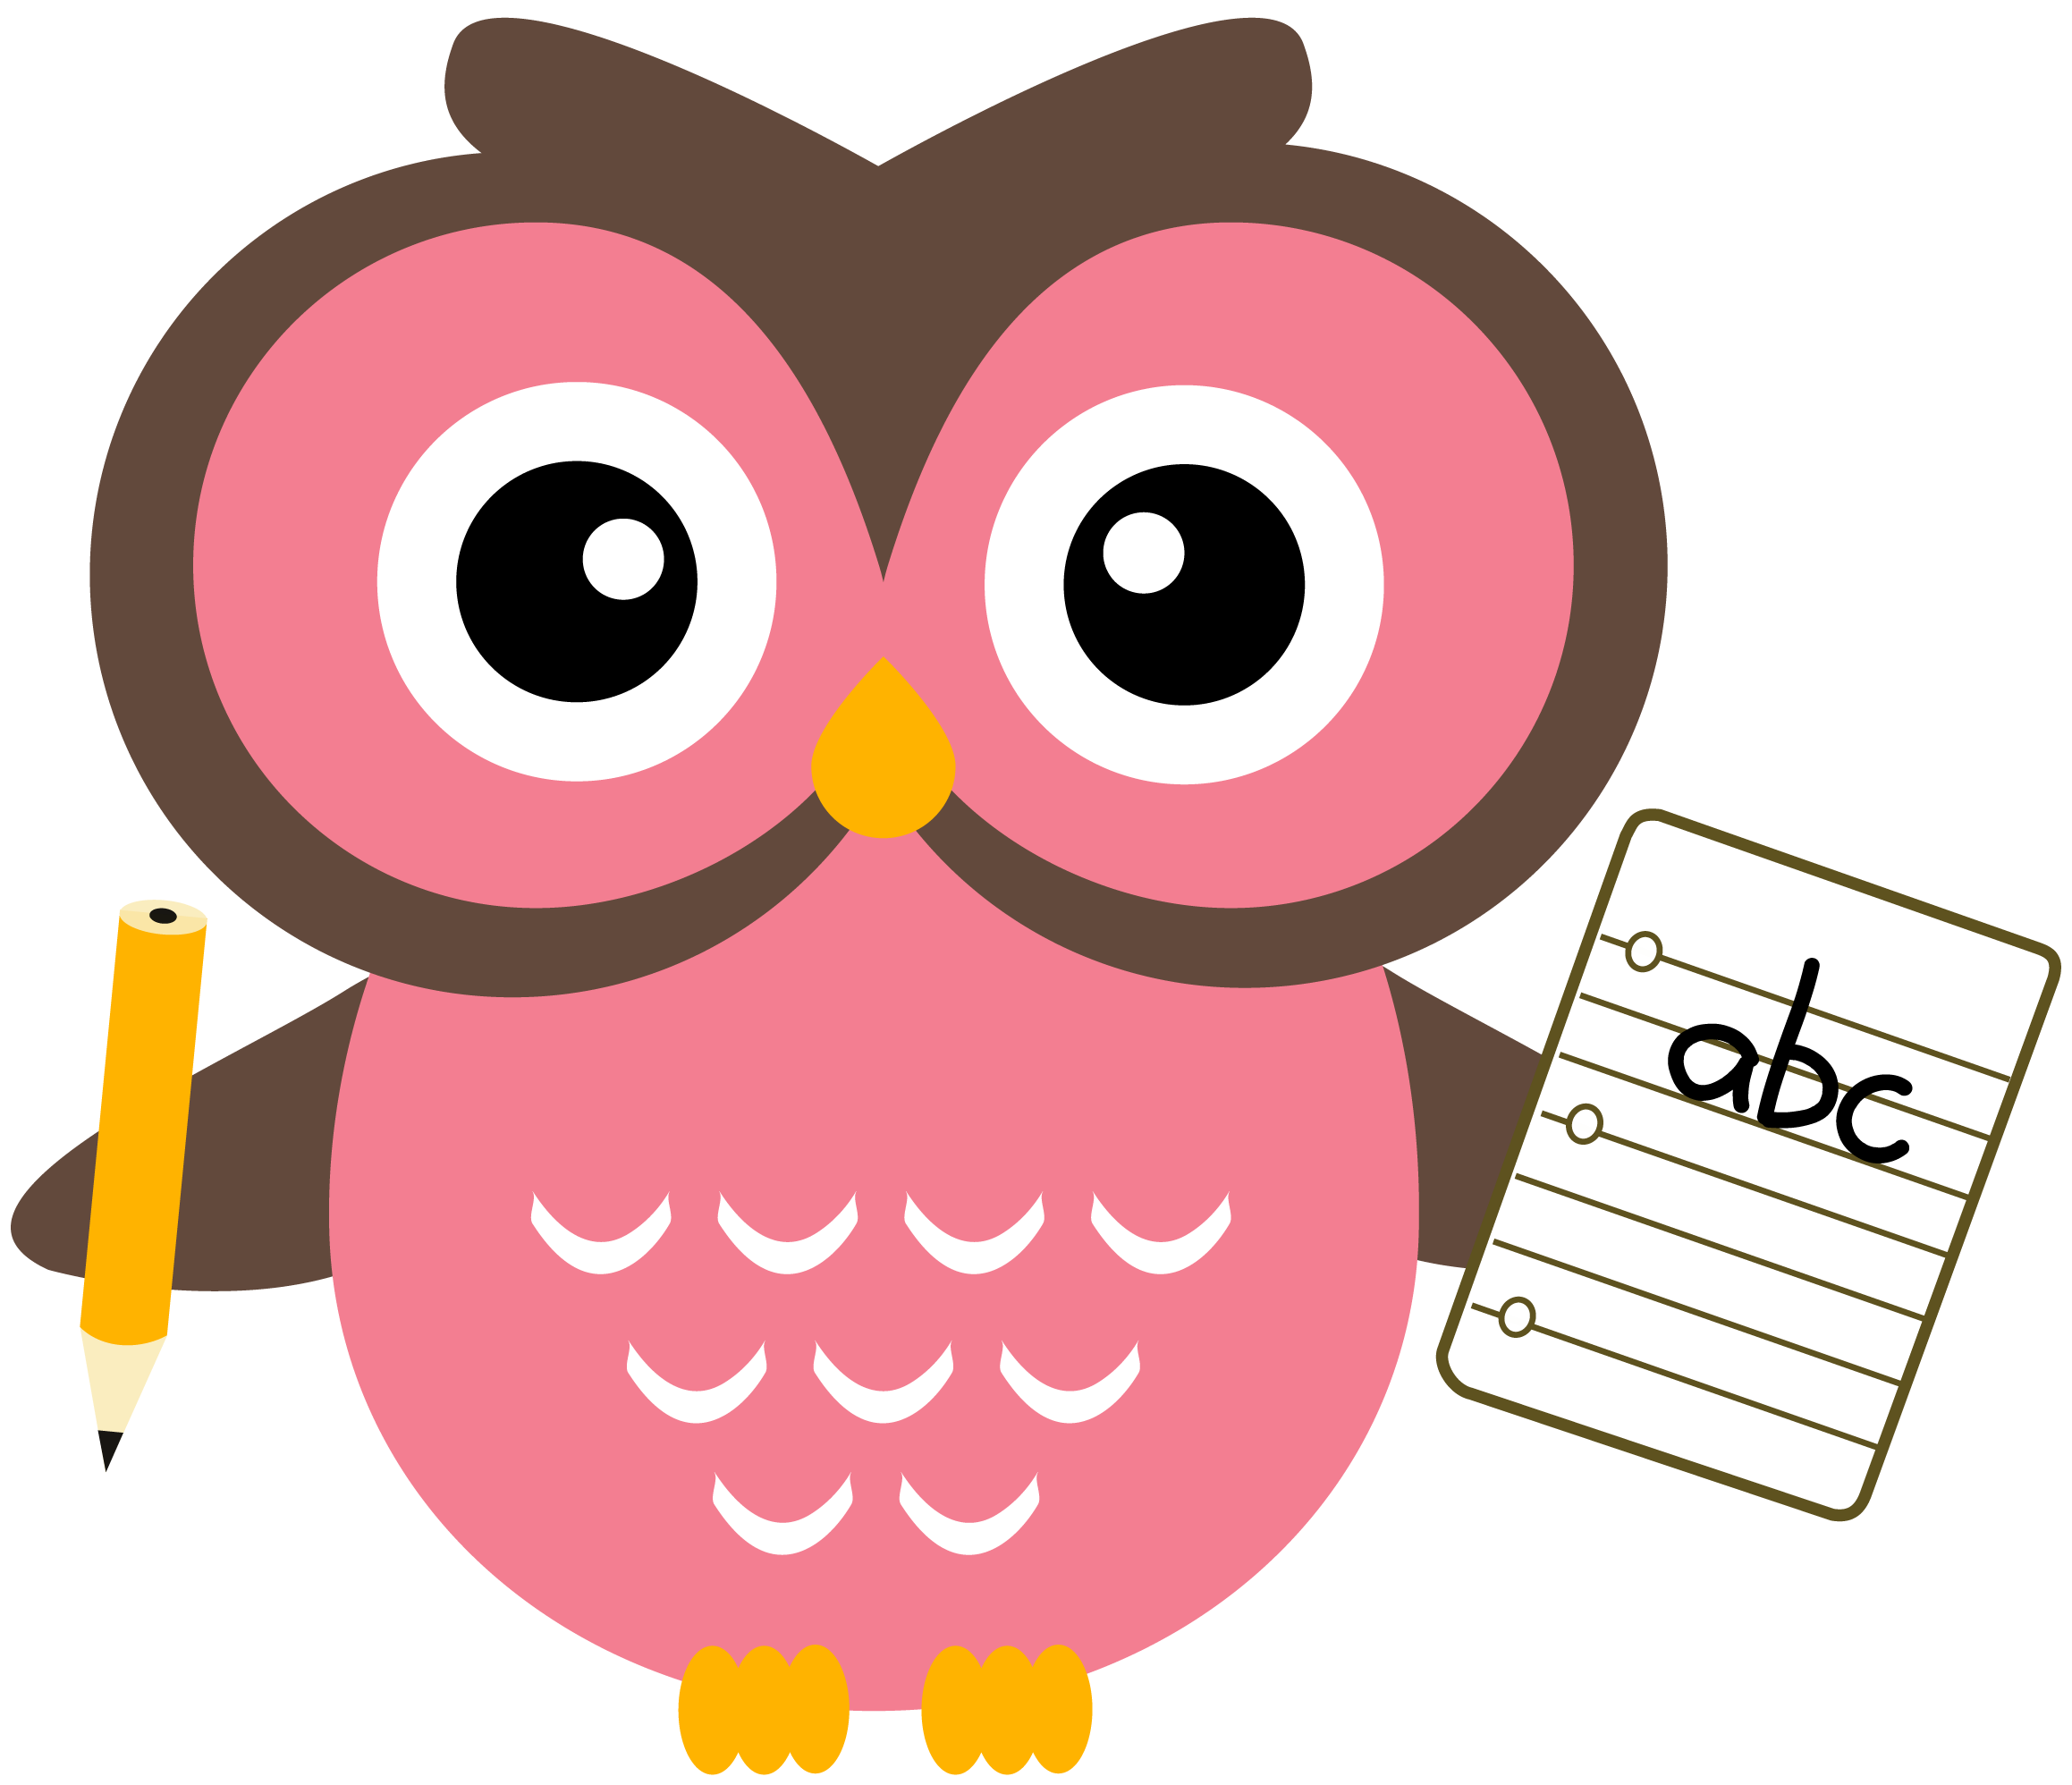 September clipart reading owl. Year miss dallison reddal